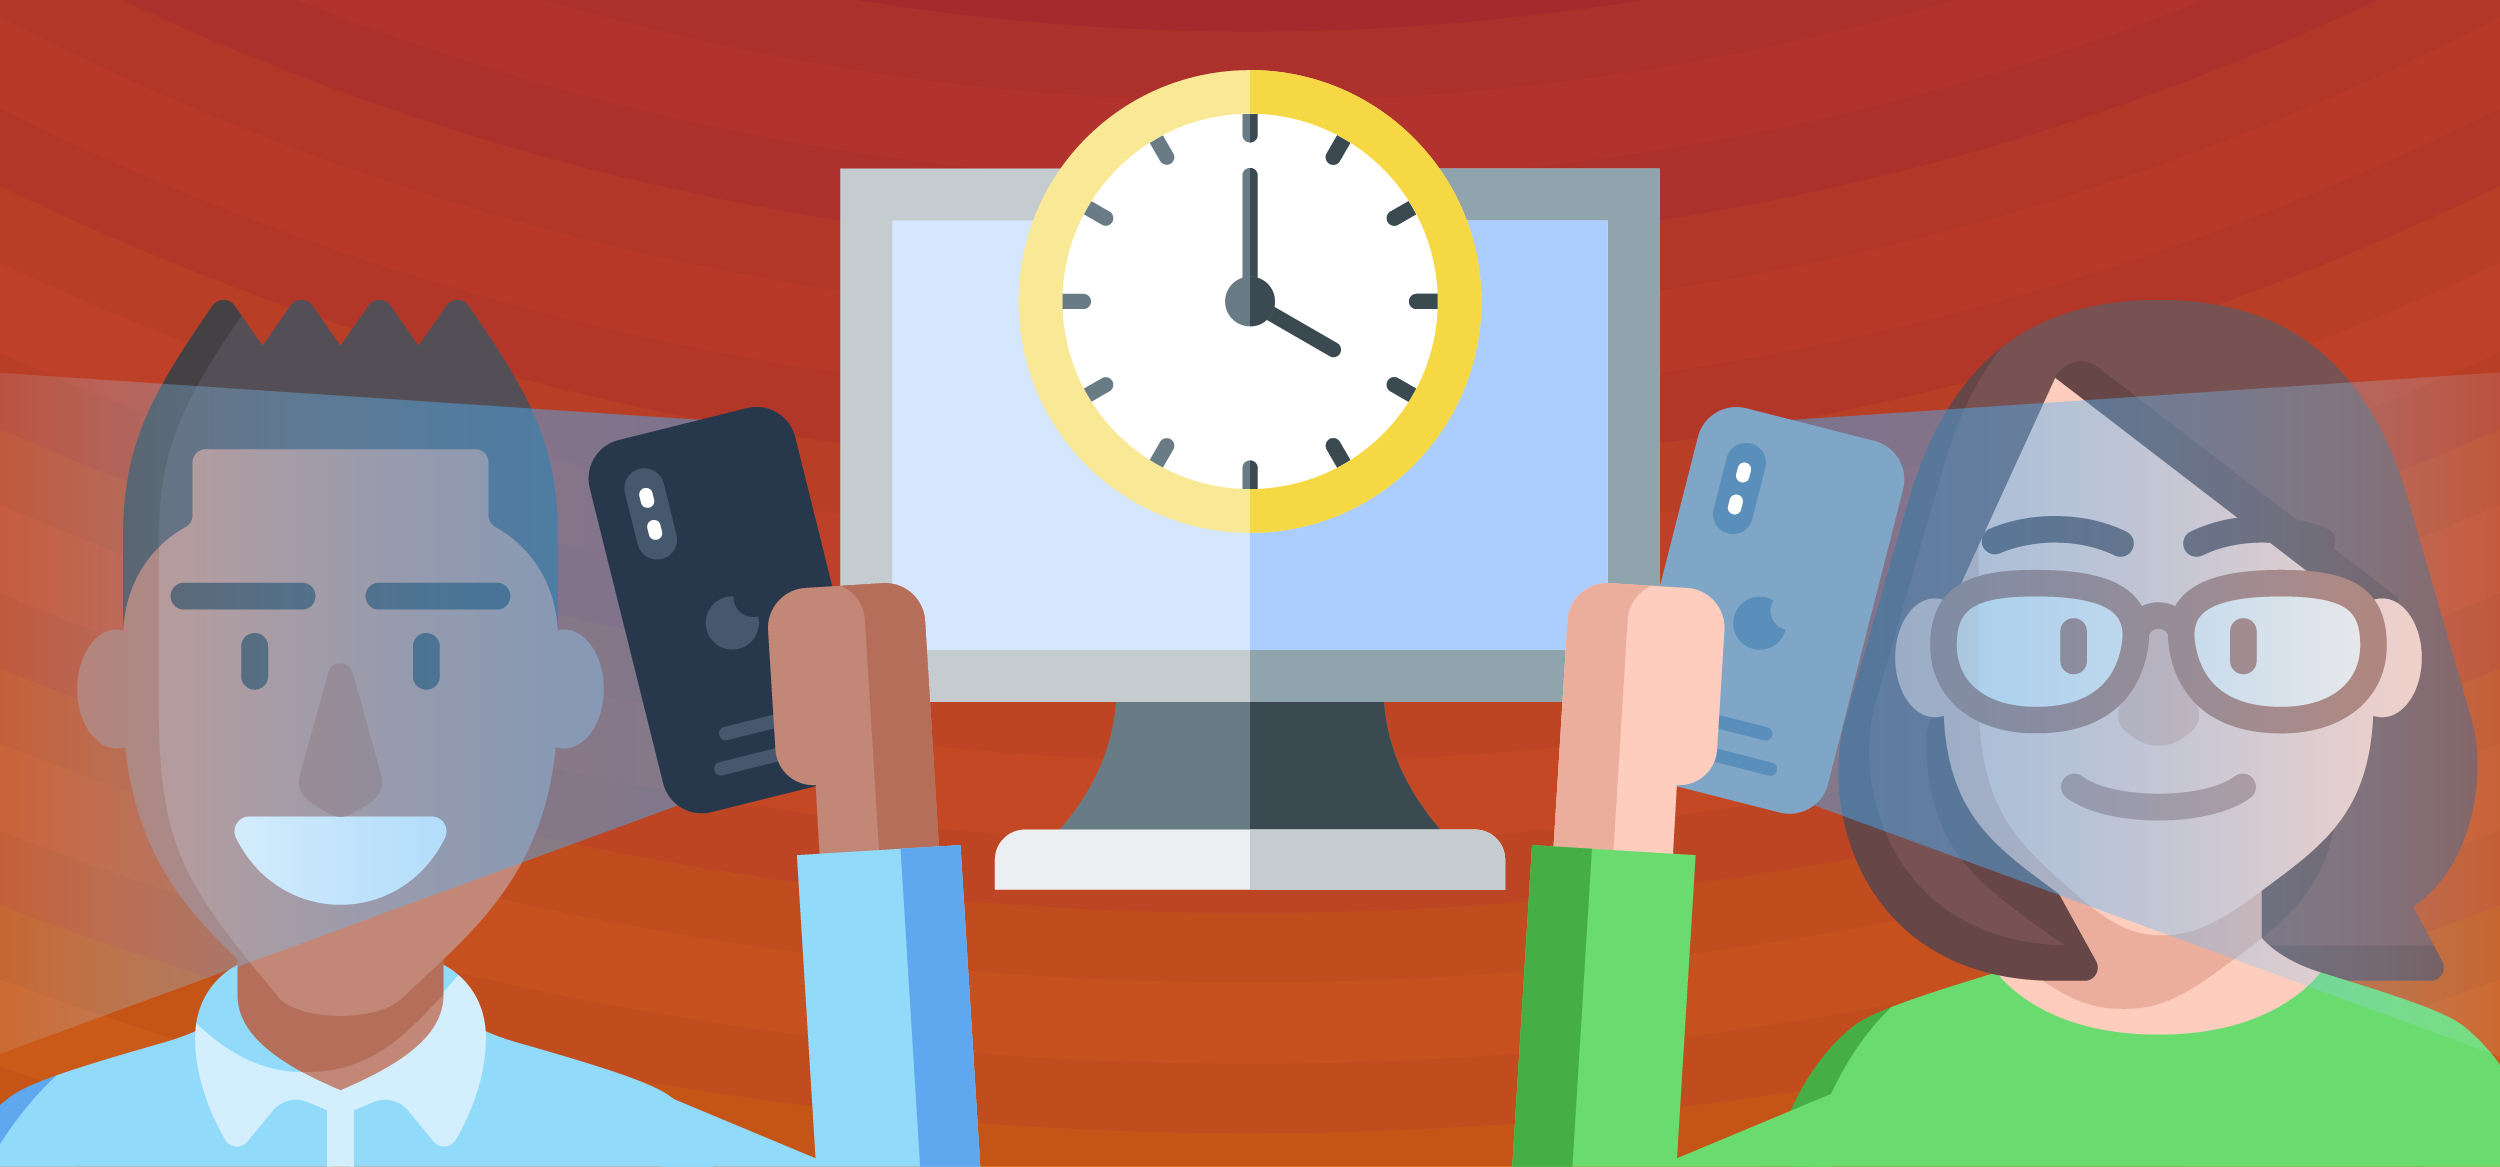 How much screen time students should have?